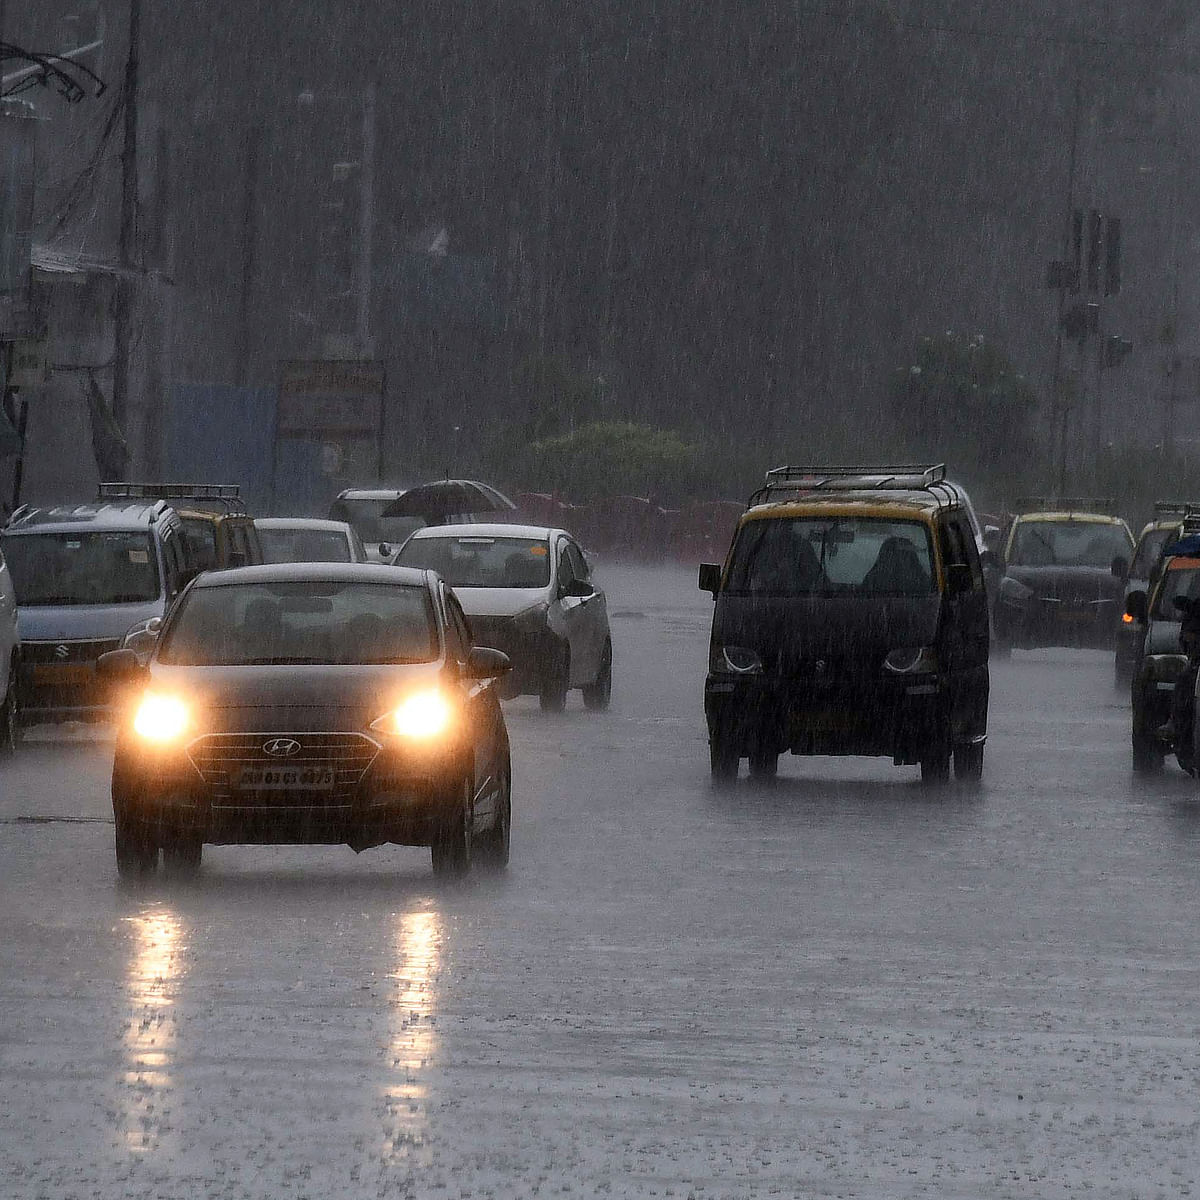 Mumbai weather updates: A day after heavy rains battered city, IMD predicts moderate to heavy rainfall and thundershowers for today